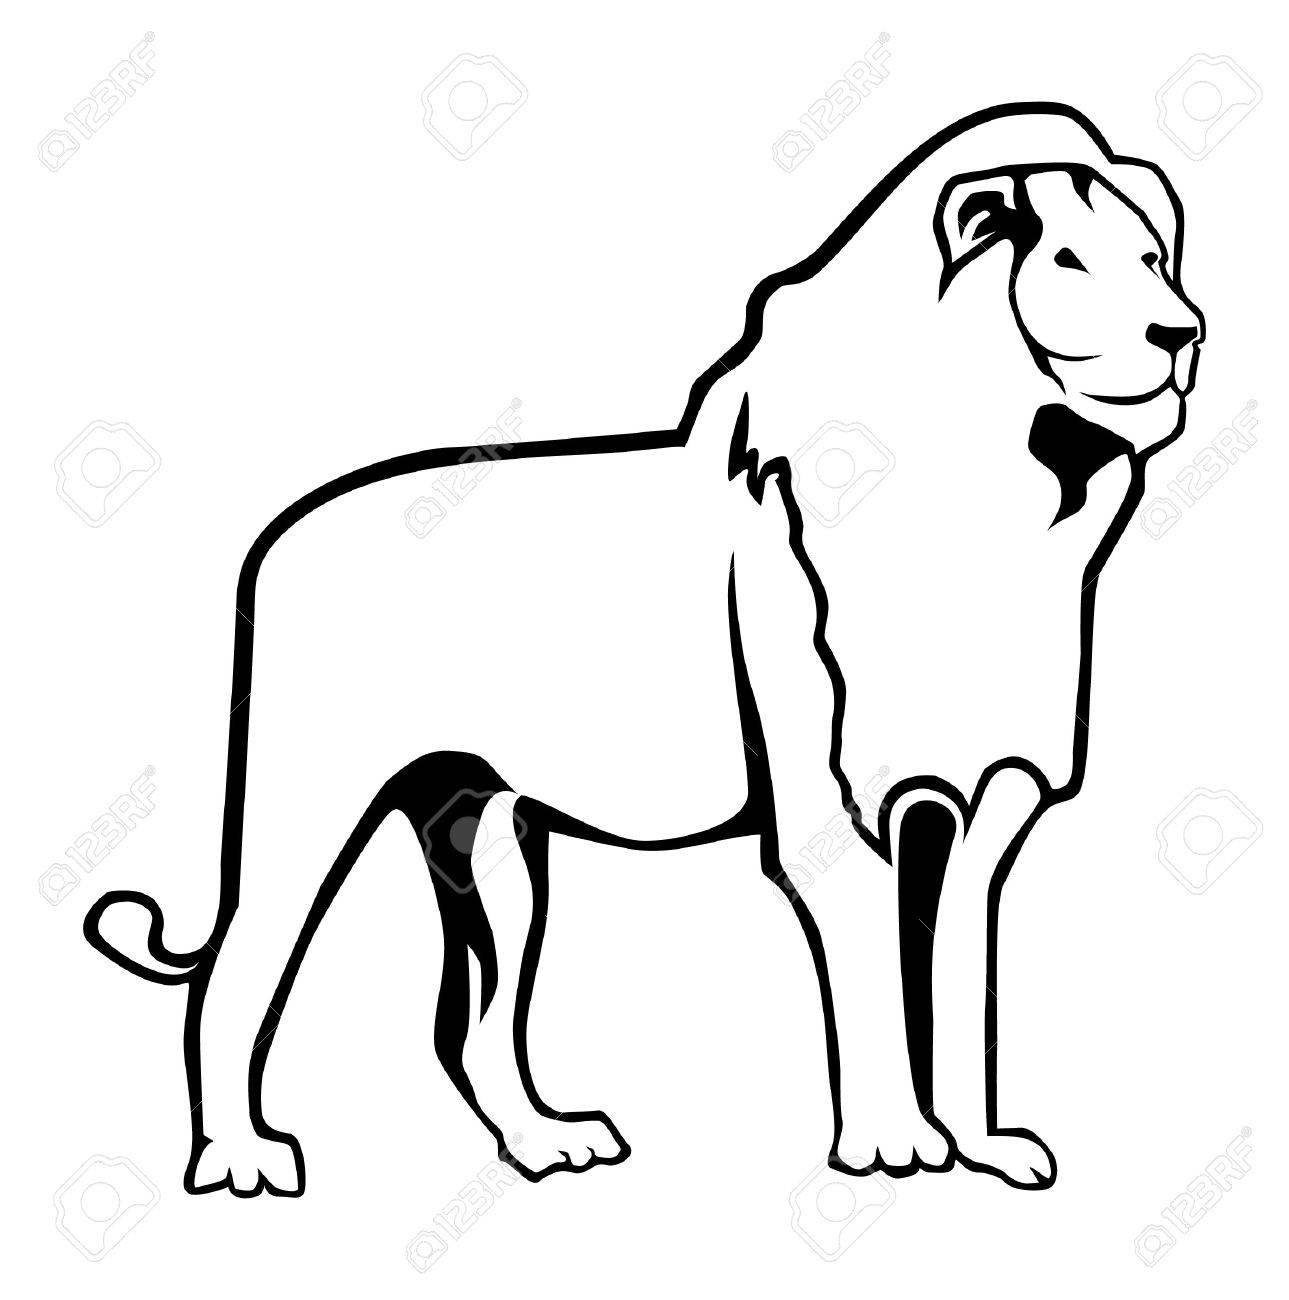 Lion Outline Royalty Free Cliparts Vectors And Stock Illustration Image 37363451